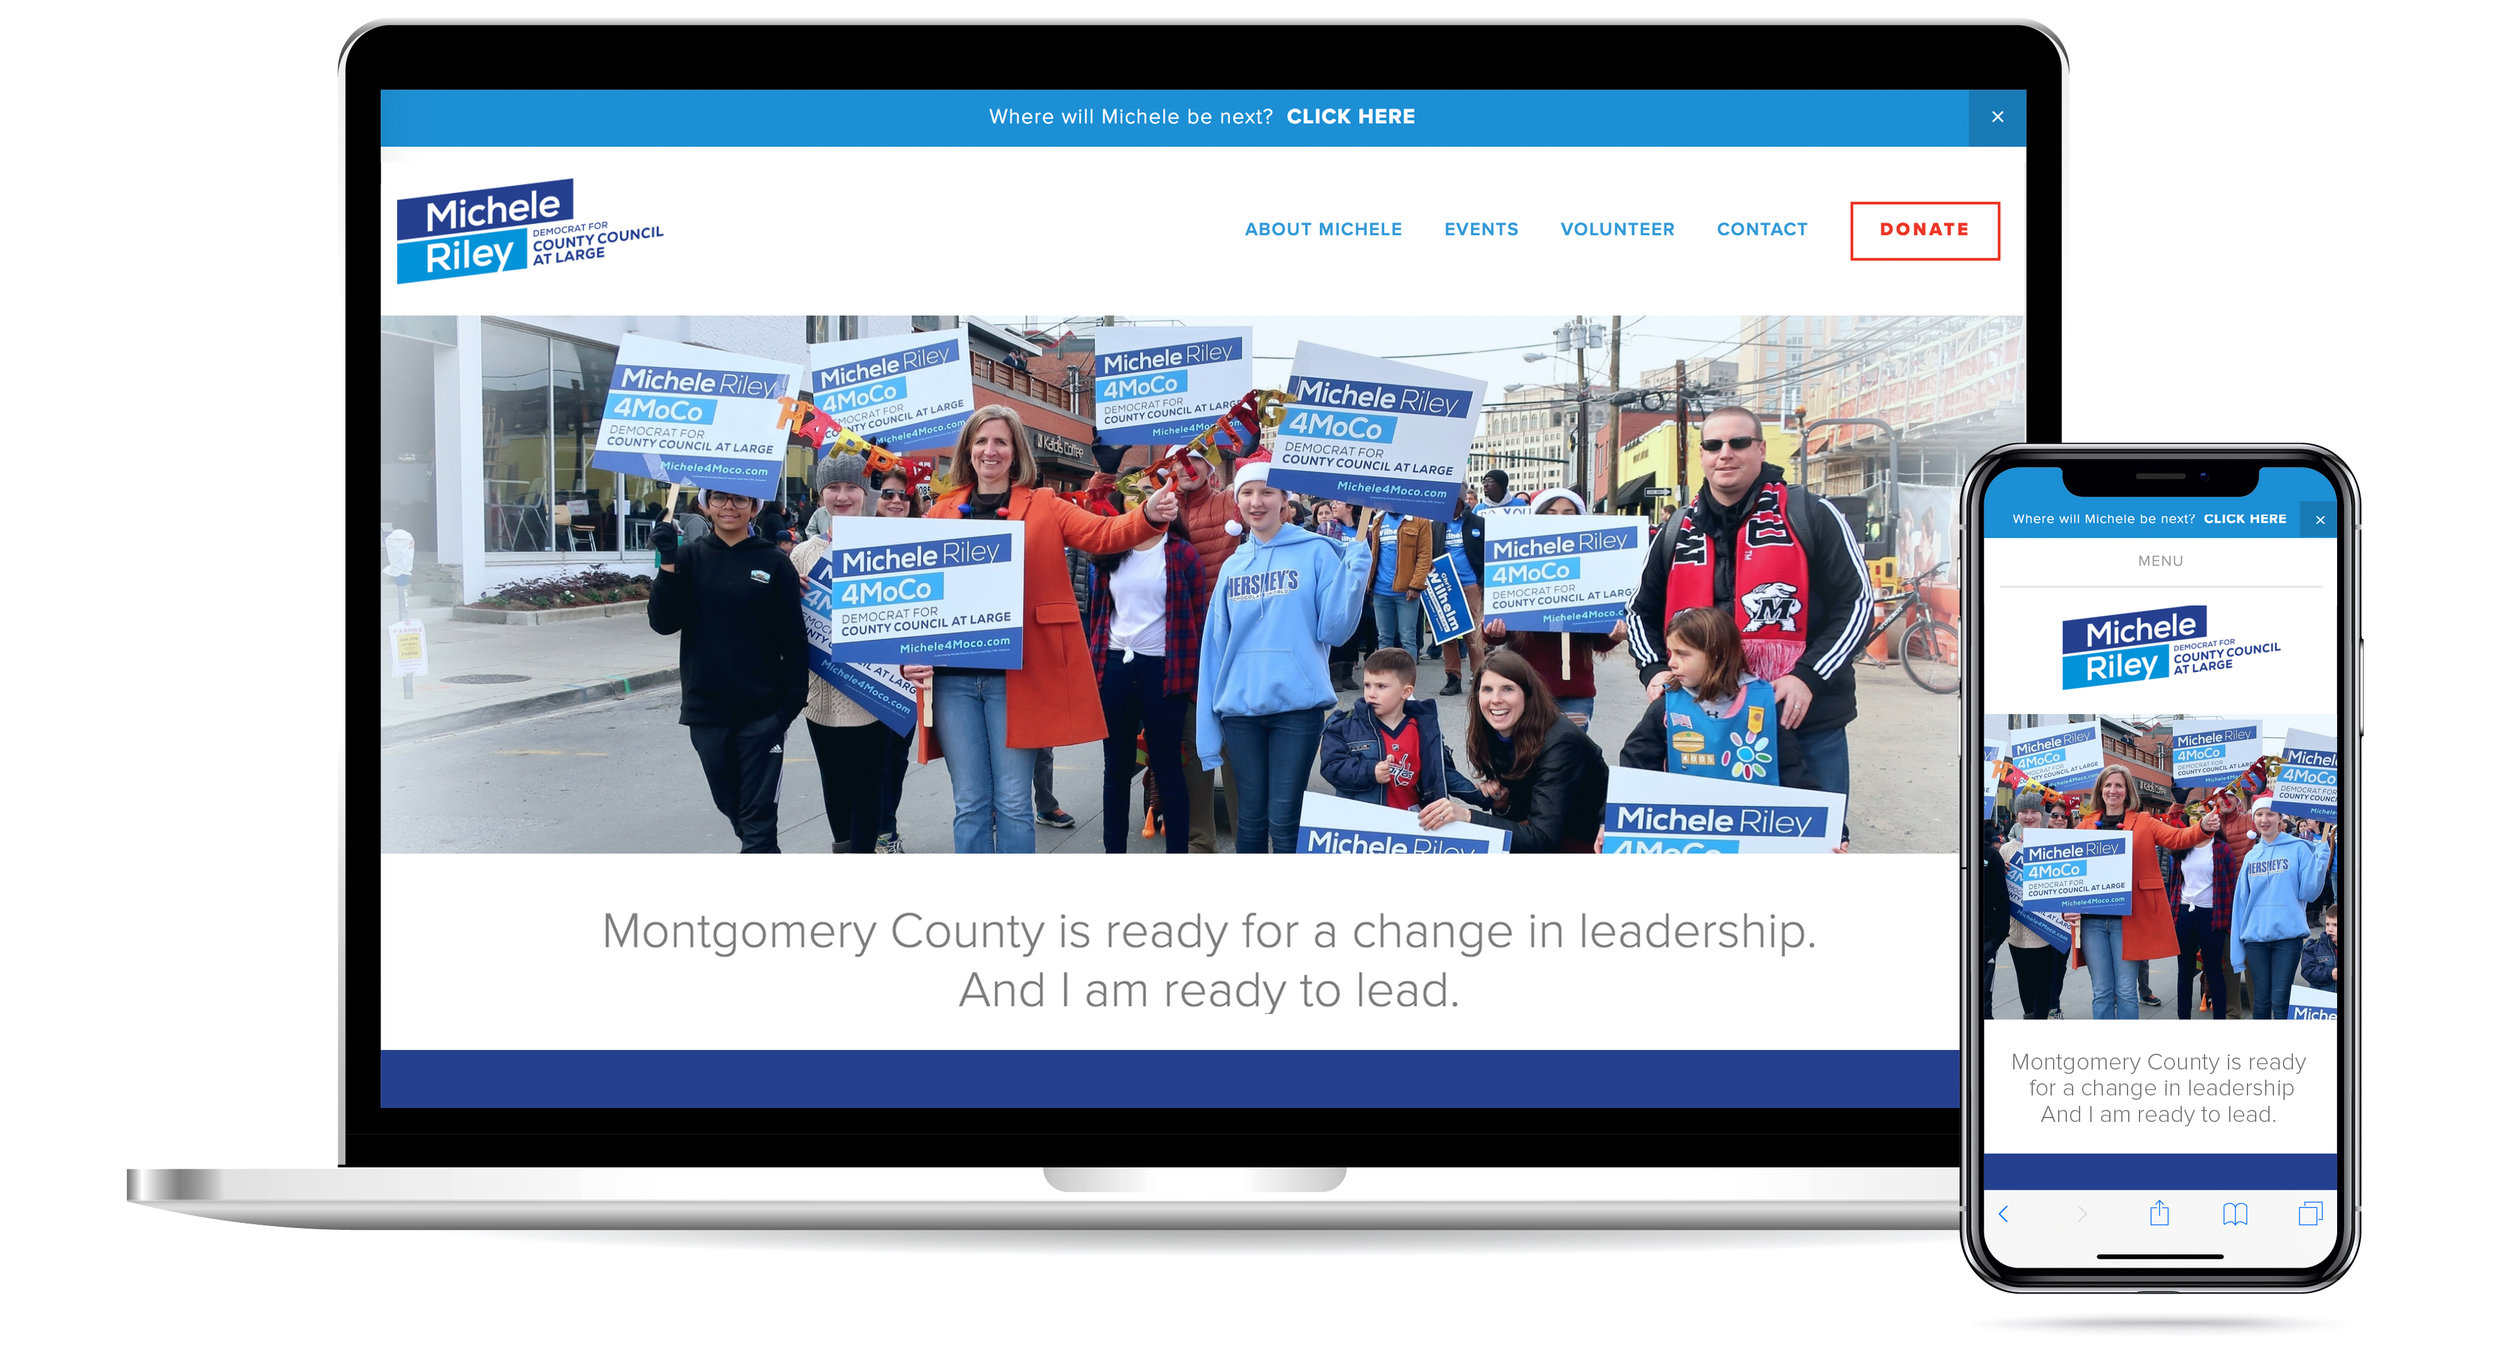 Site no longer active, but this will link to share overview of my client Michele Riley who ran for County Council — her first-ever political run.